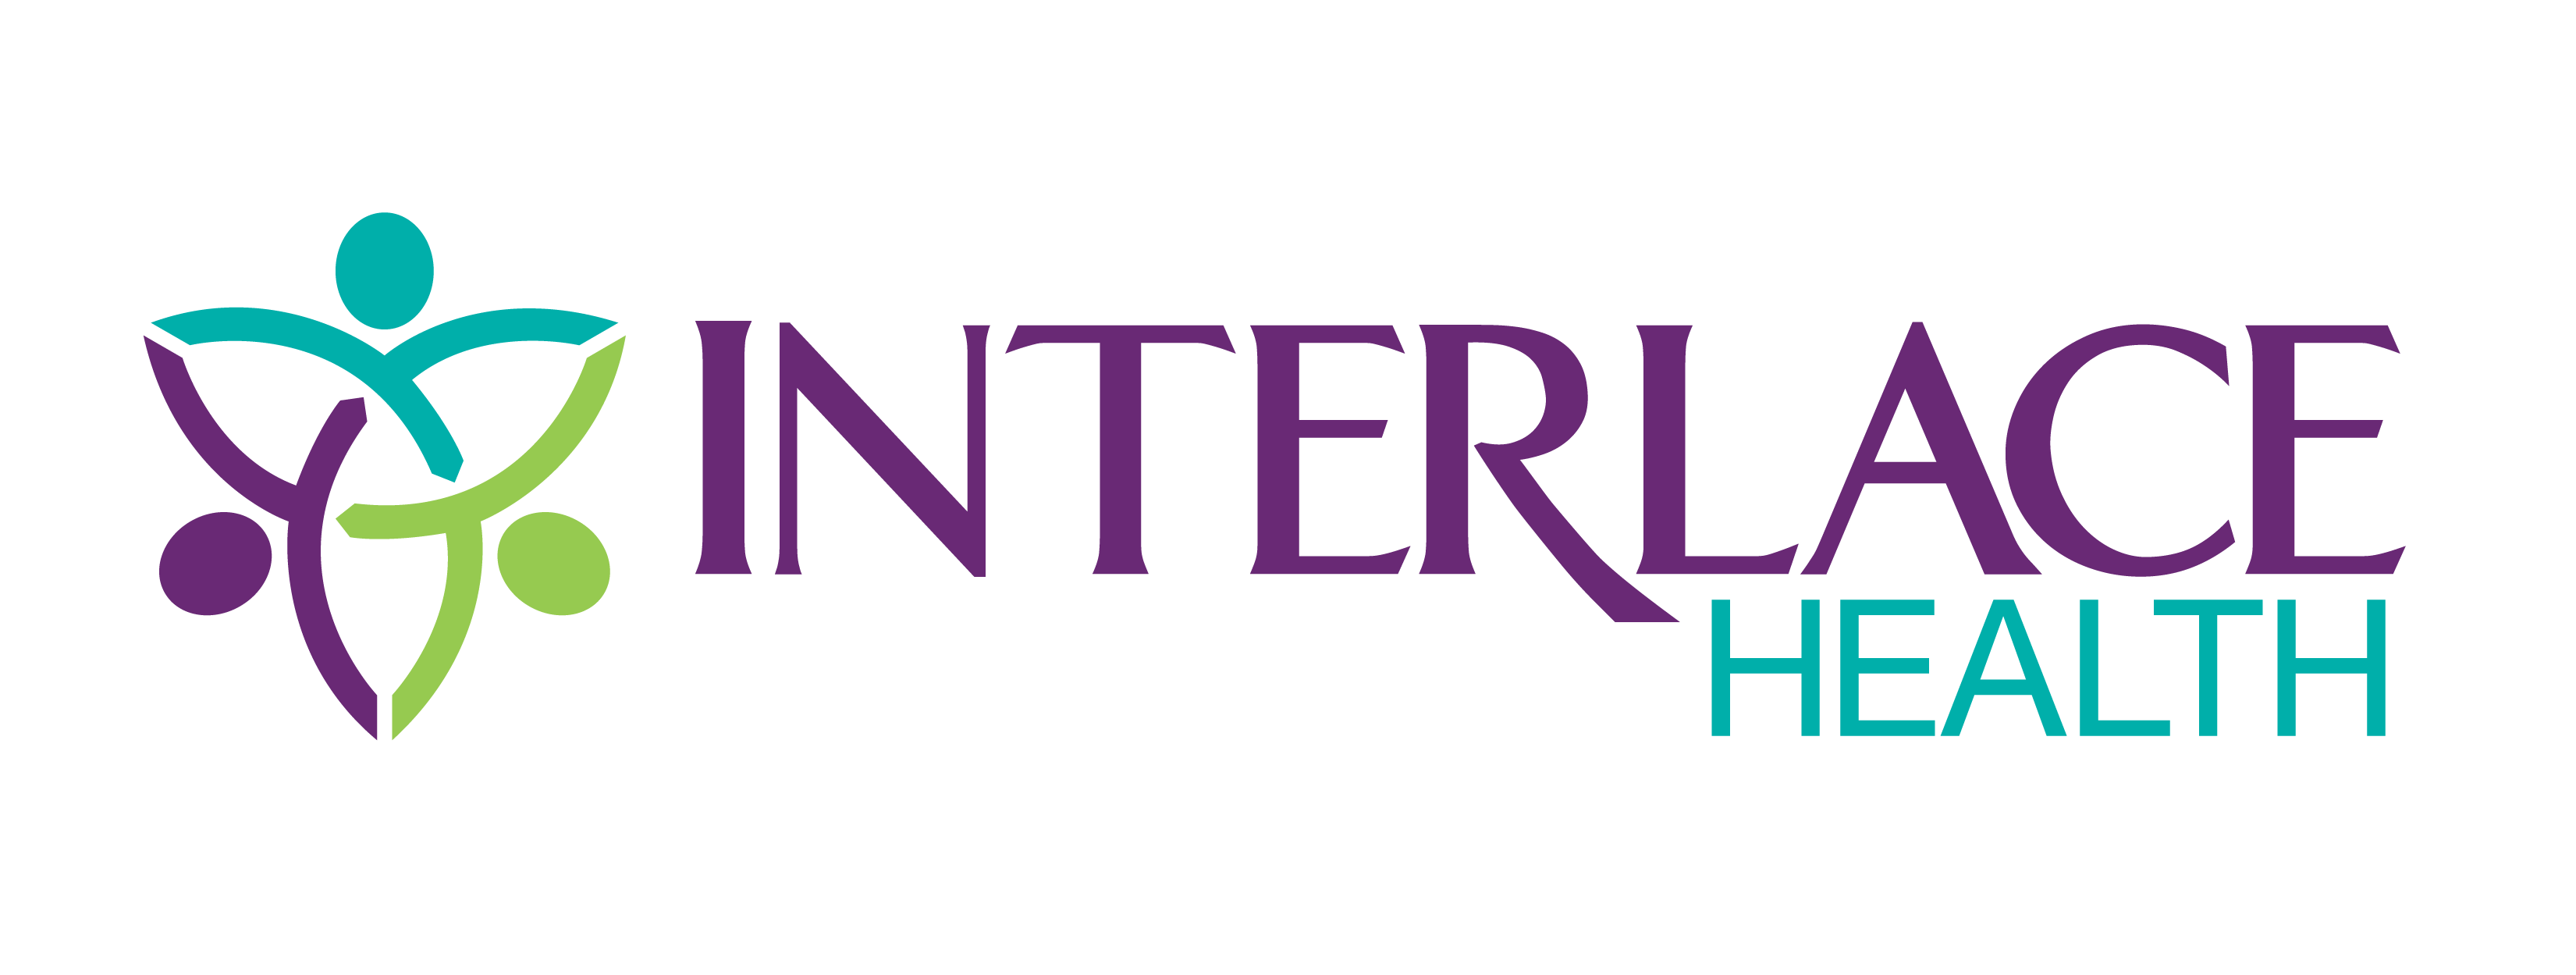 interlace-final-logo-dec-2019-color